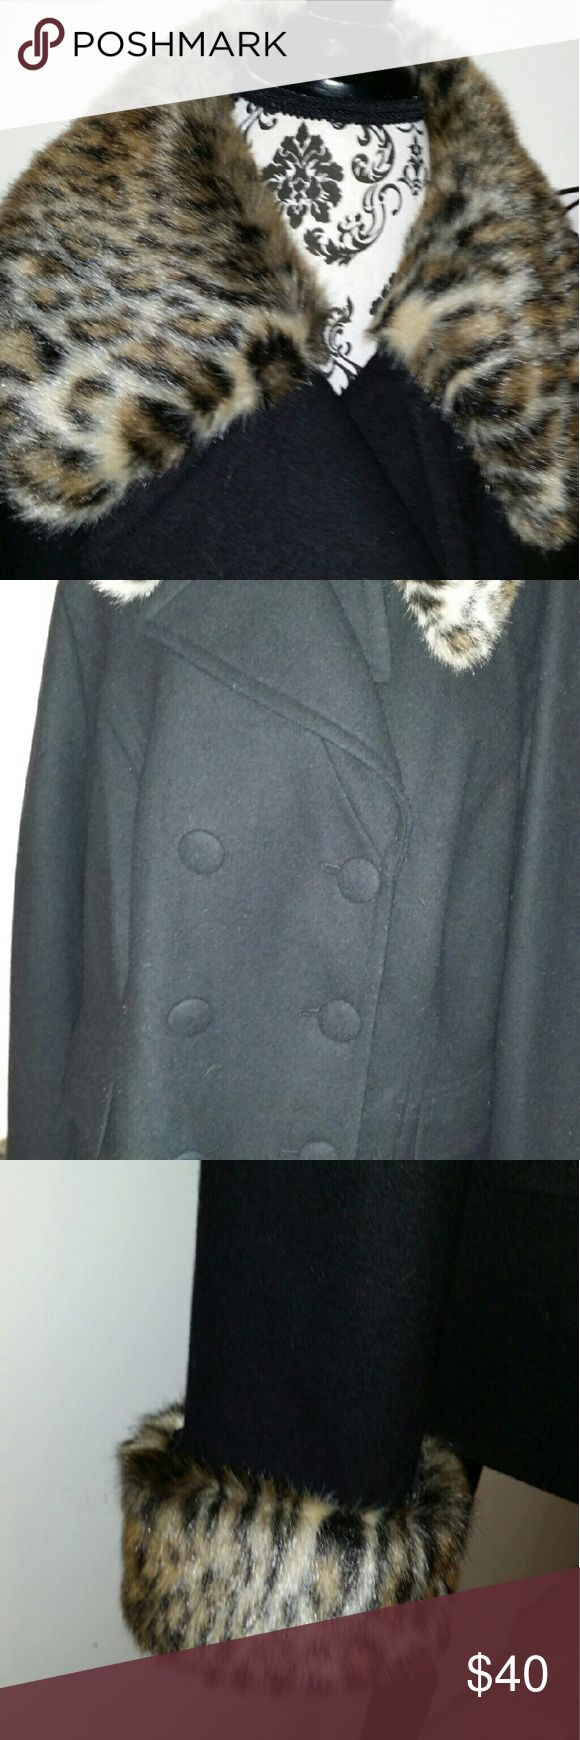 Plus size coat Plus size peacoat with leopard fur INC International Concepts Jackets & Coats Pea Coats